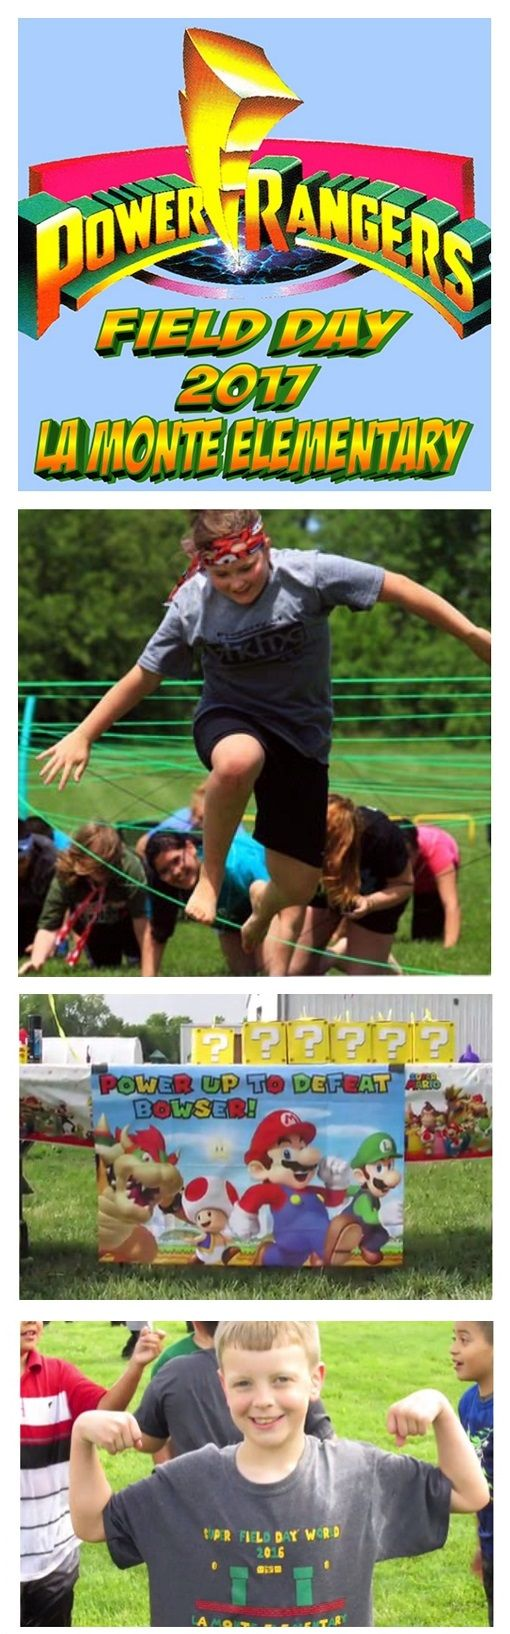 Field Day wouldn't be complete without themed activities! We love these 7 new activities from PE Central - to get kids moving and practicing the skills they learned all year!